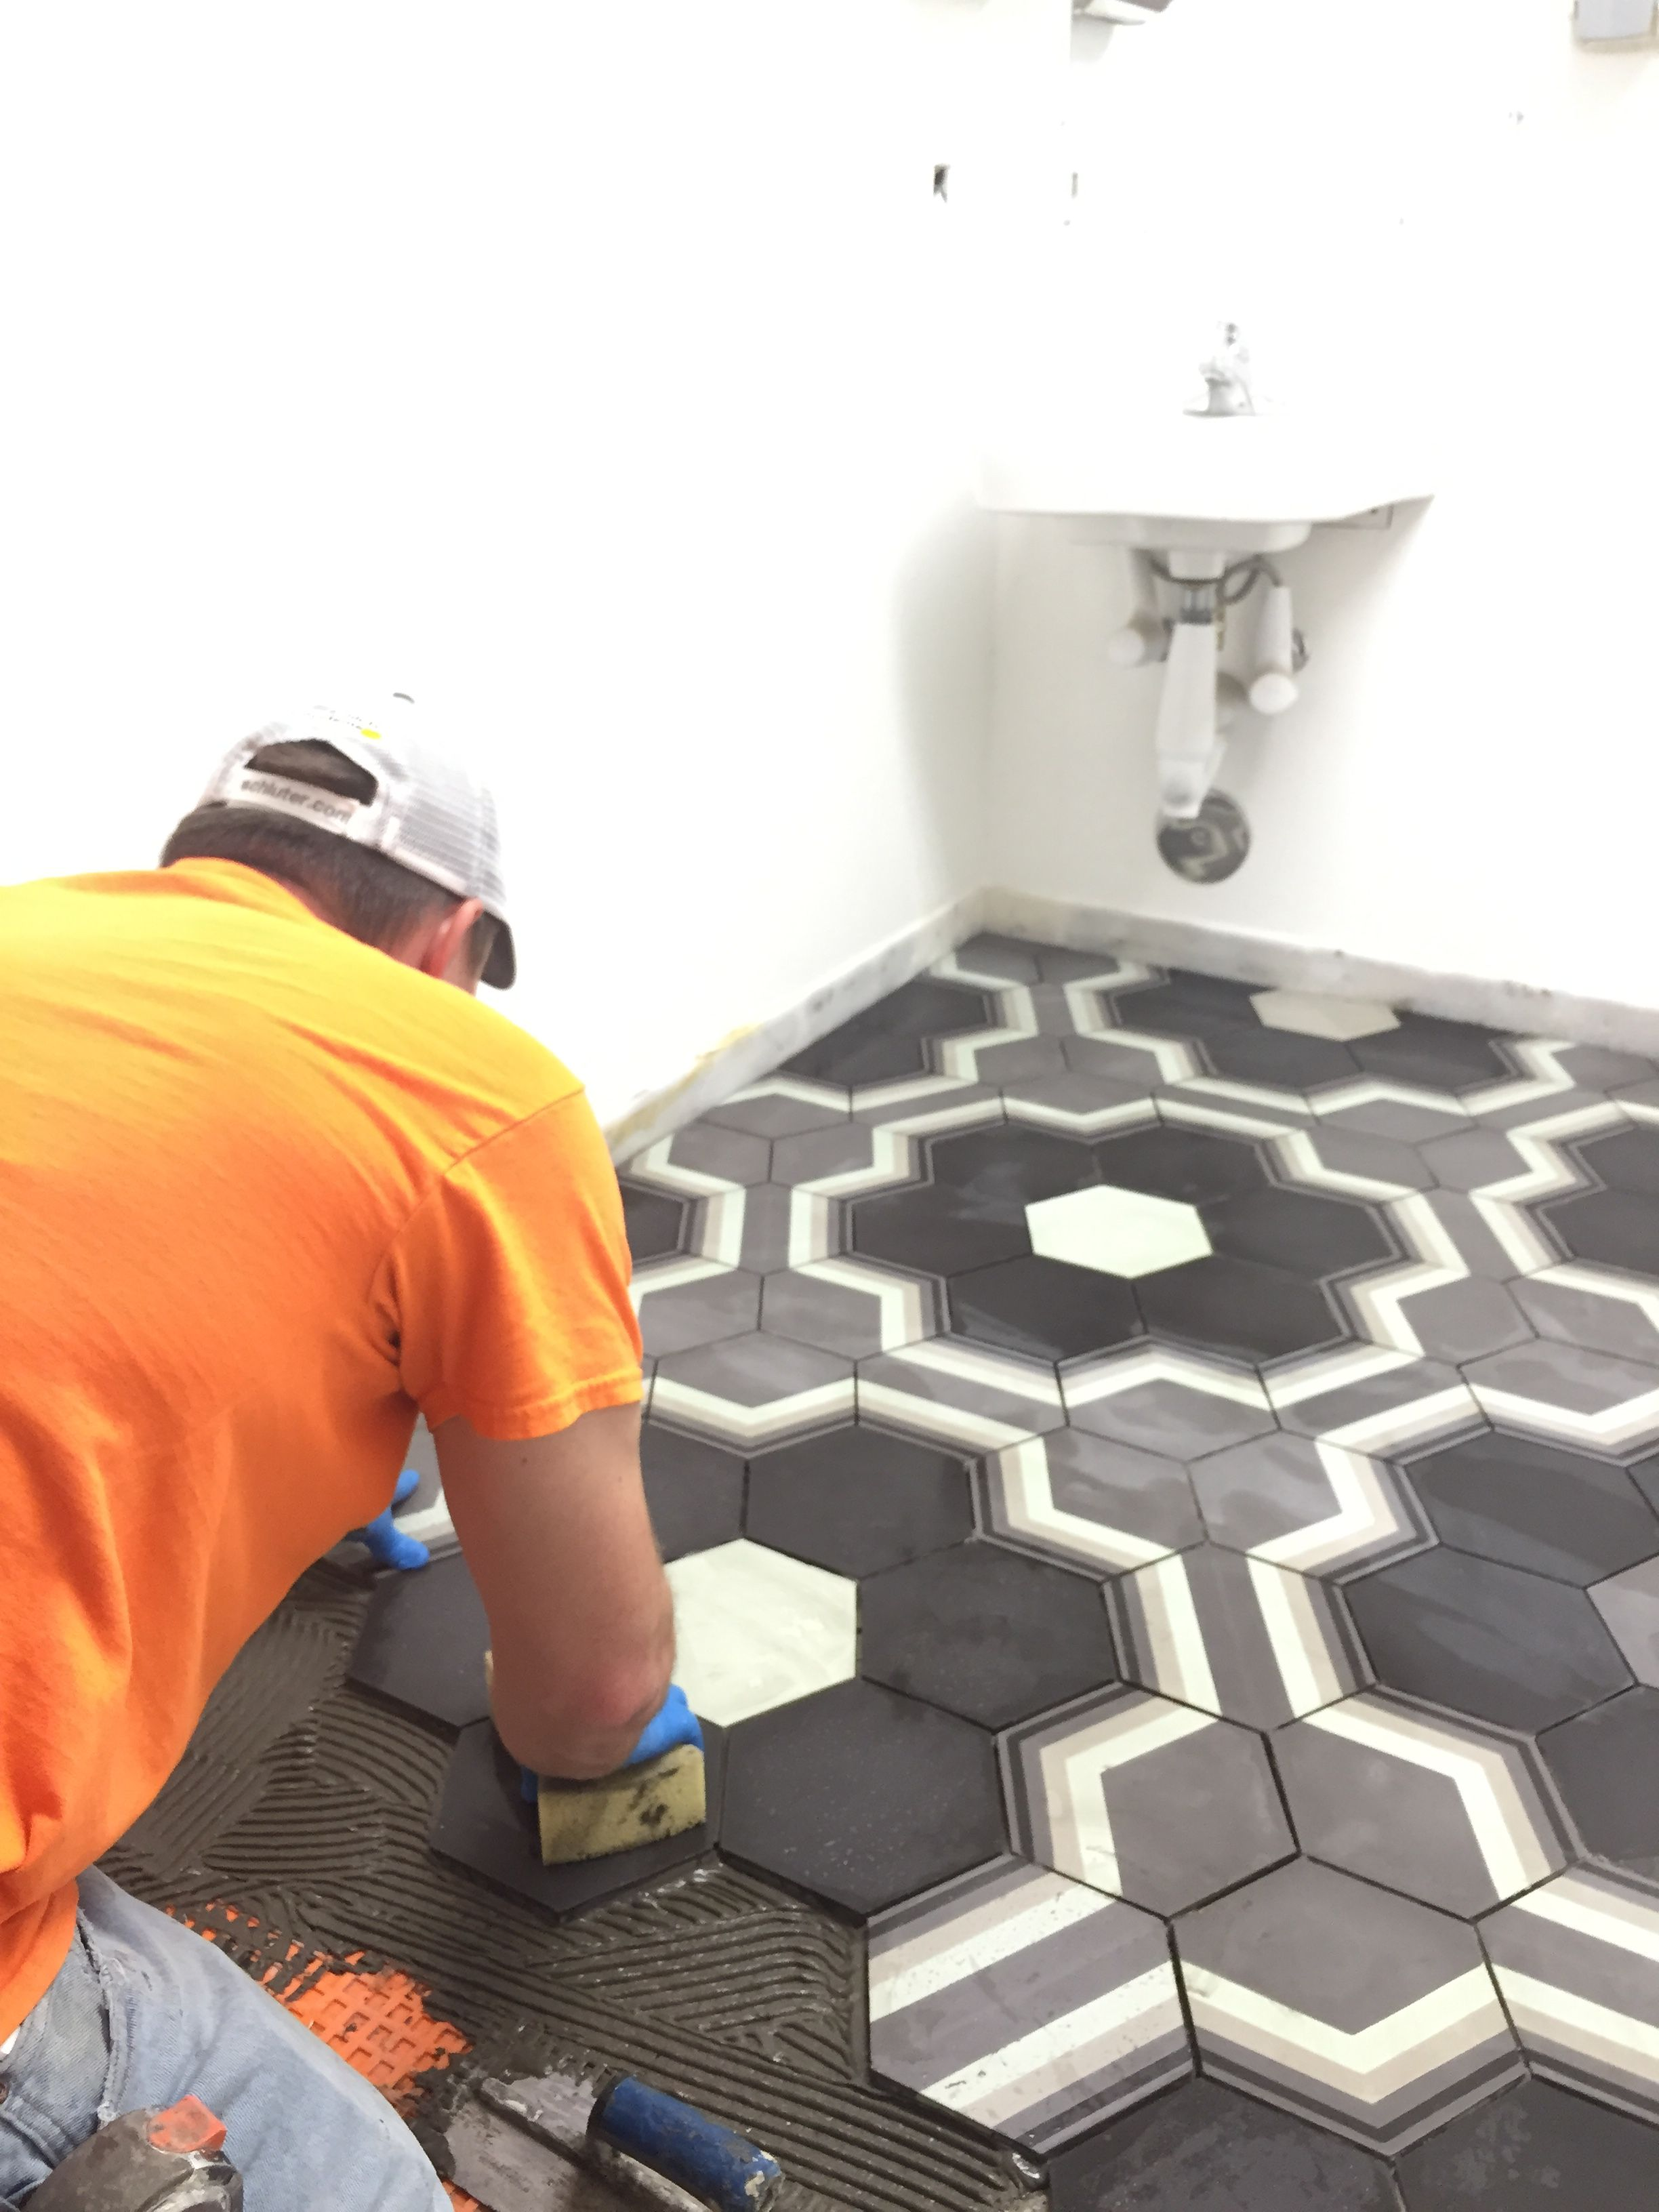 Fantastic encaustic tile install in process.  Love, love the gorgeous tile from Archipelago Tile by Stephanie Dyer.